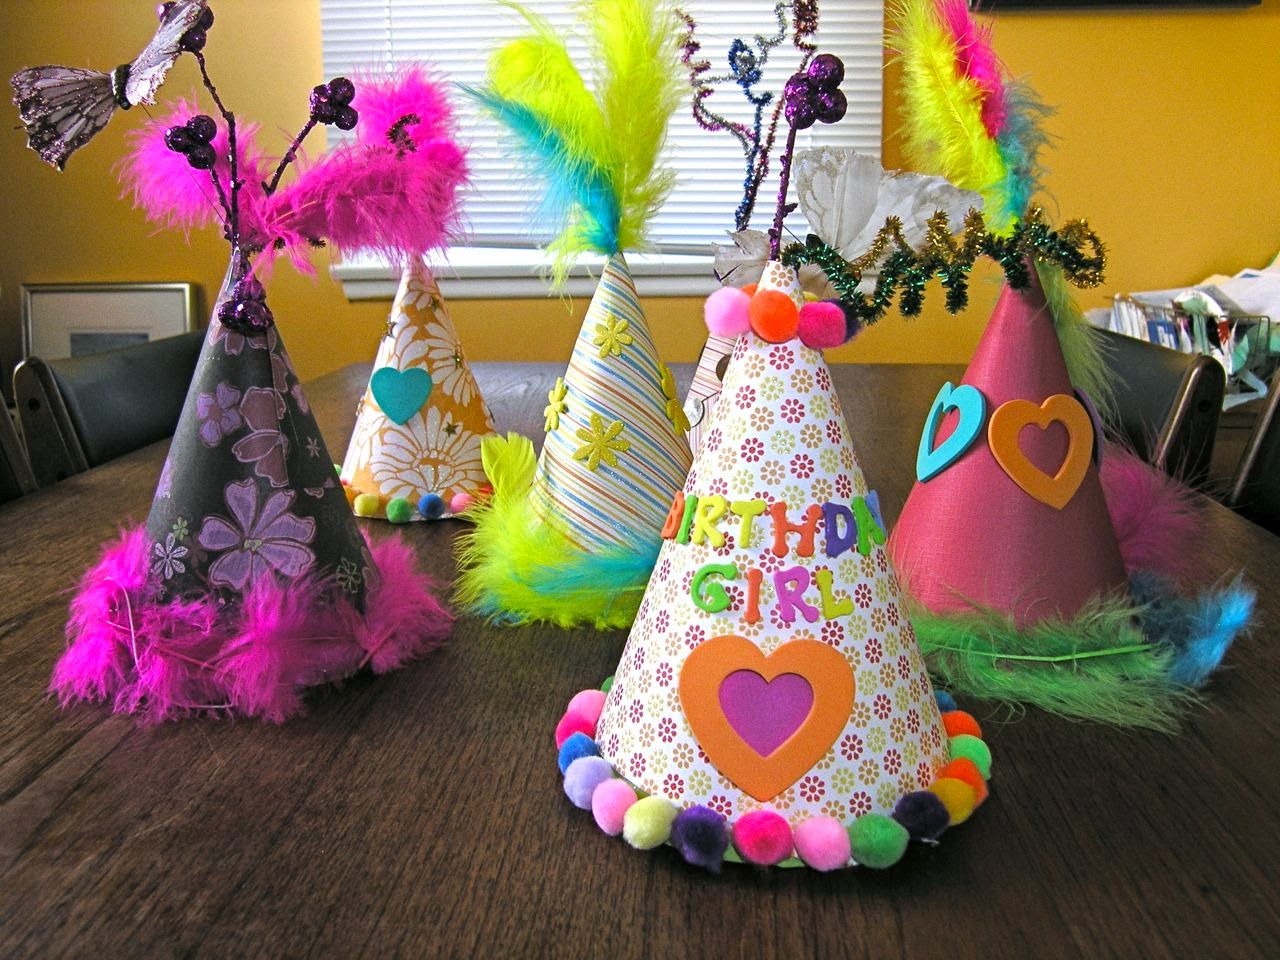 birthday party craft ideas for 6 year olds birthday craft ideas for 6 year olds 2015 8189